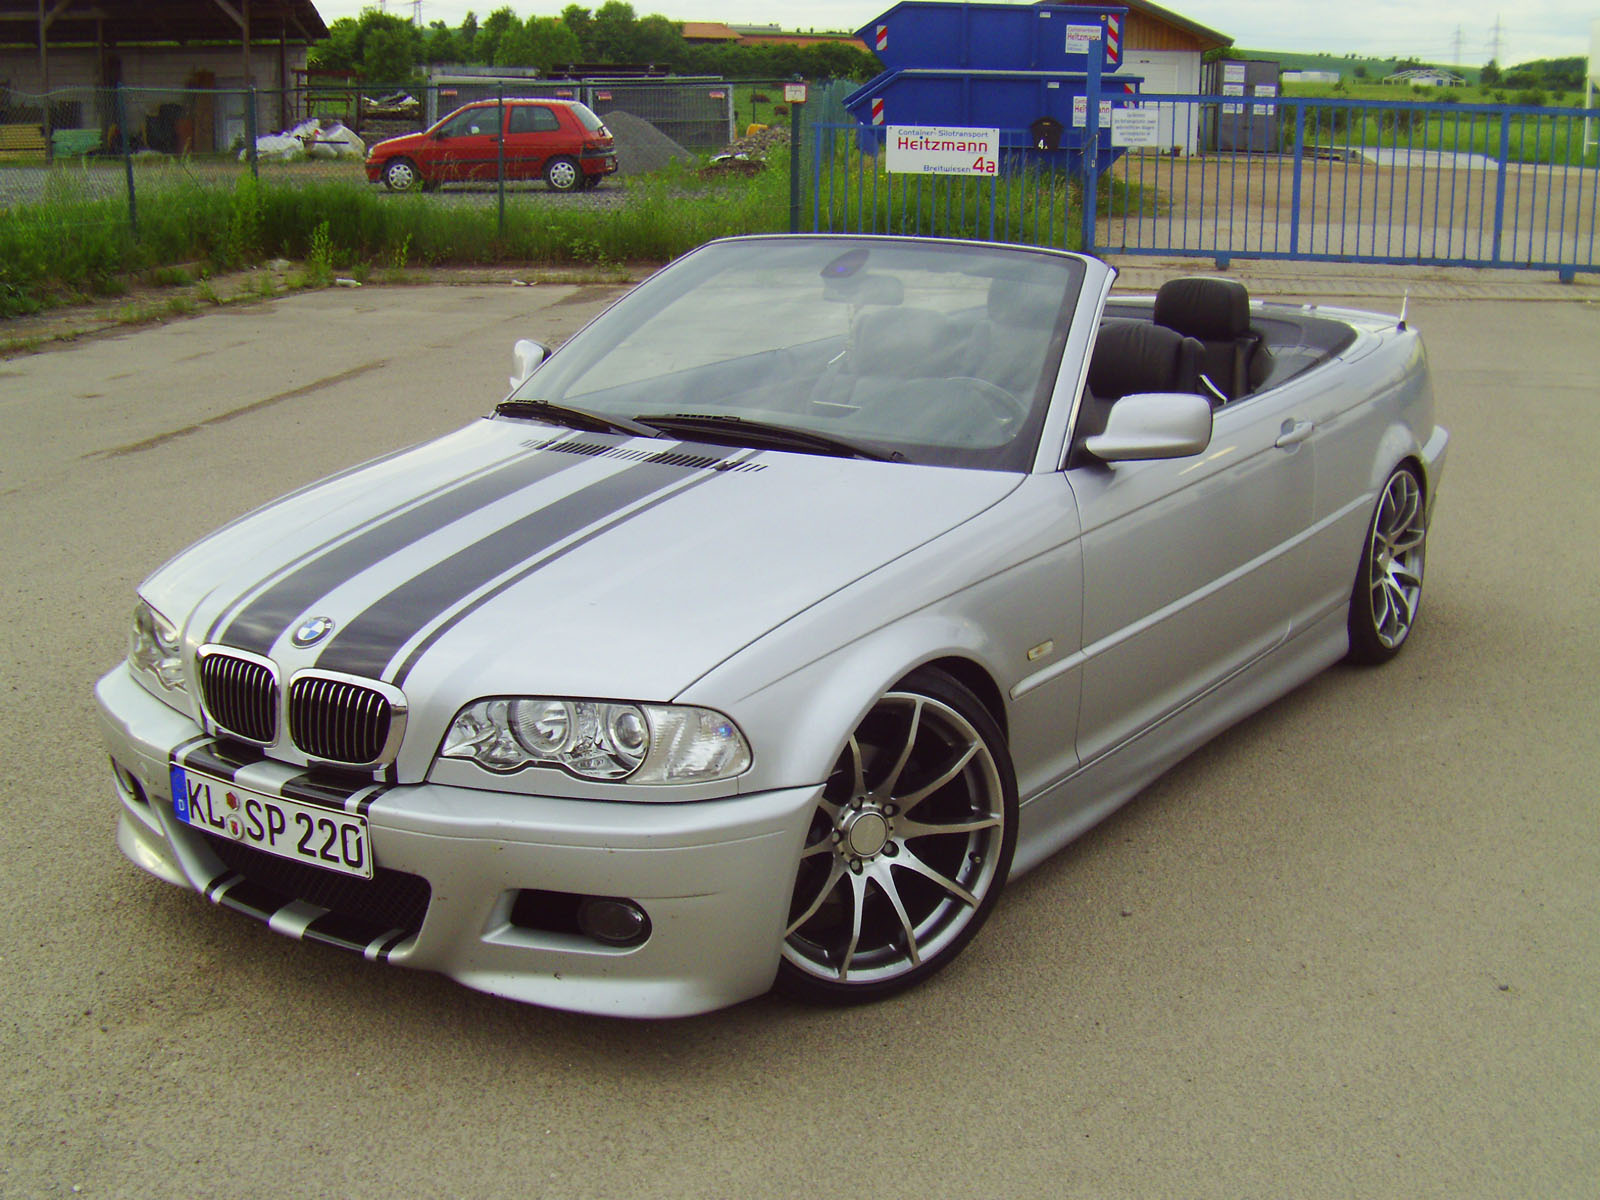 BMW E Ci For Sale APO Armed Forces EuropeAfrica - 325 ci bmw